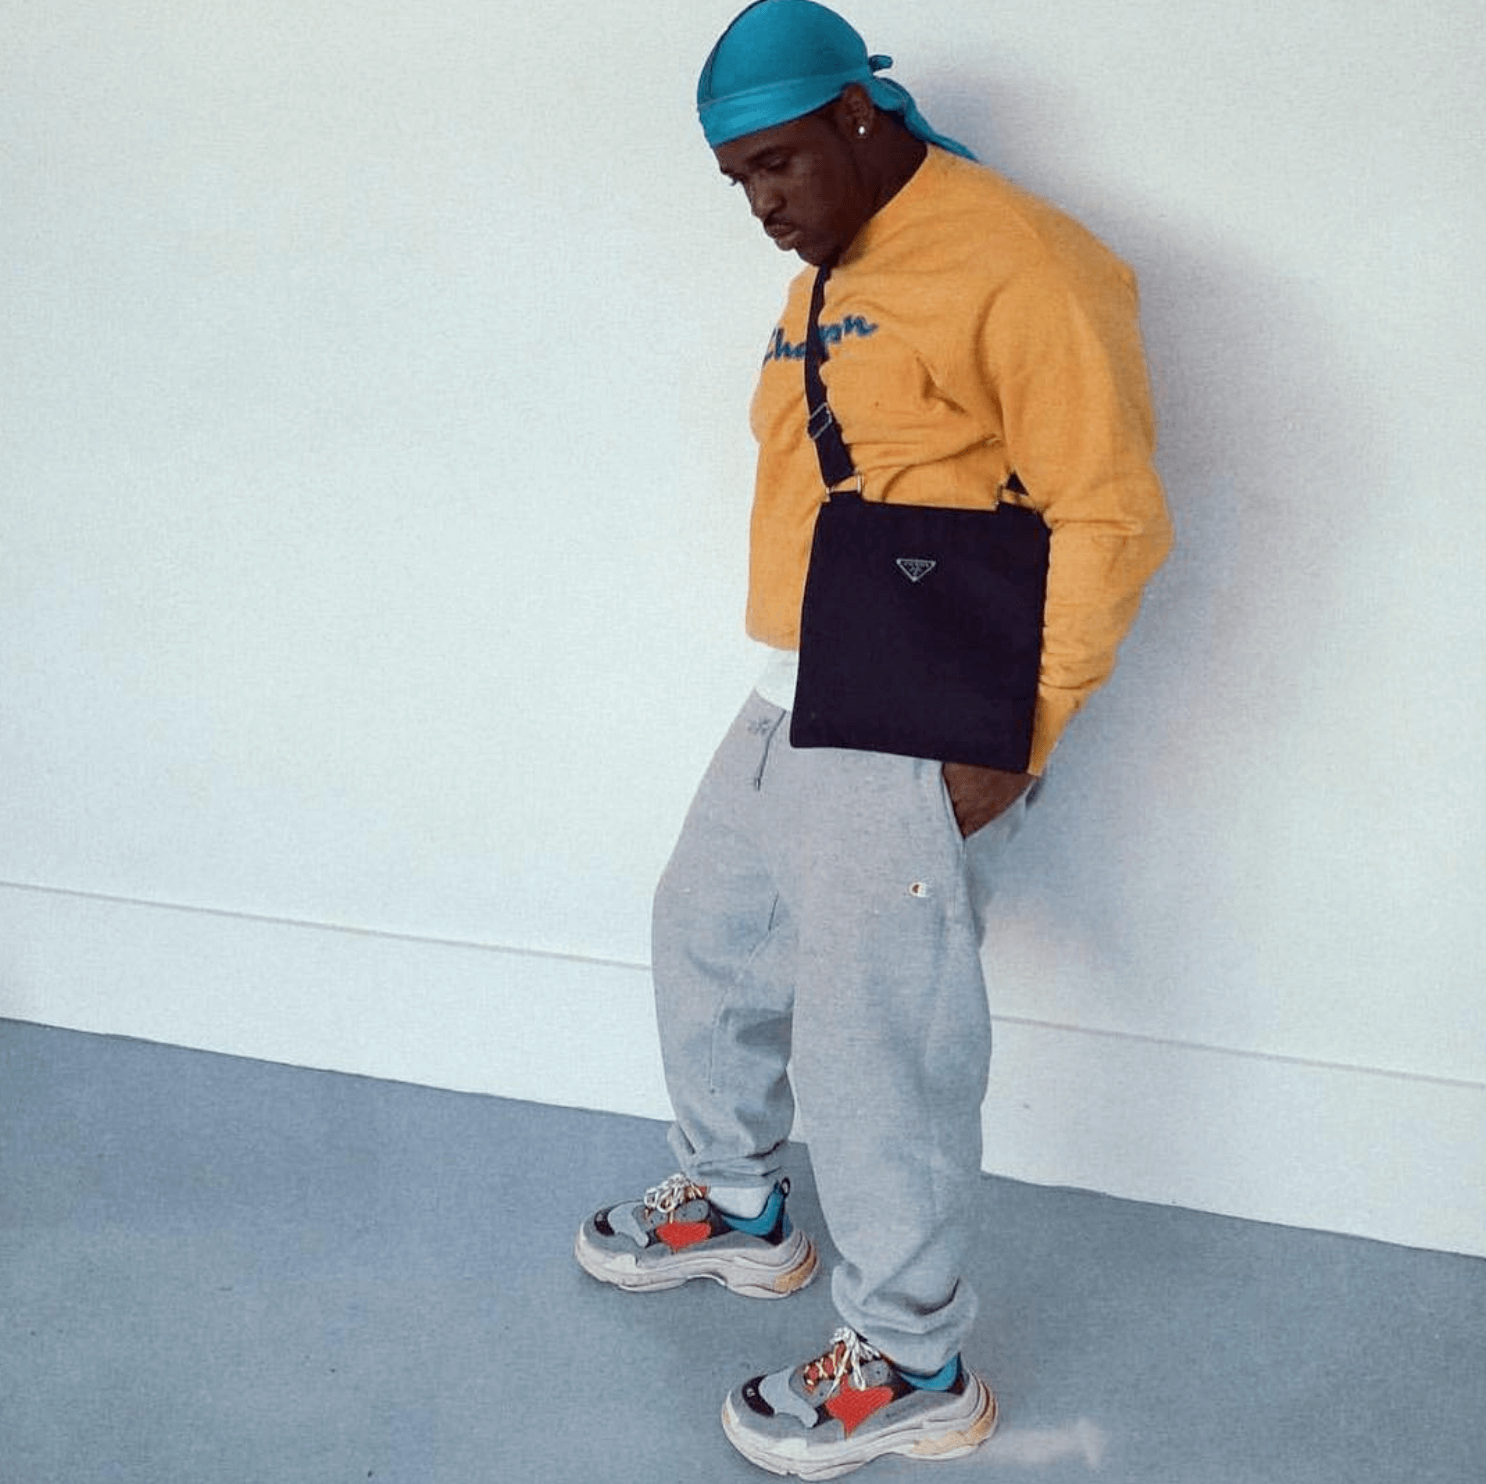 Asap Ferg in the Balenciaga Triple S sneakers